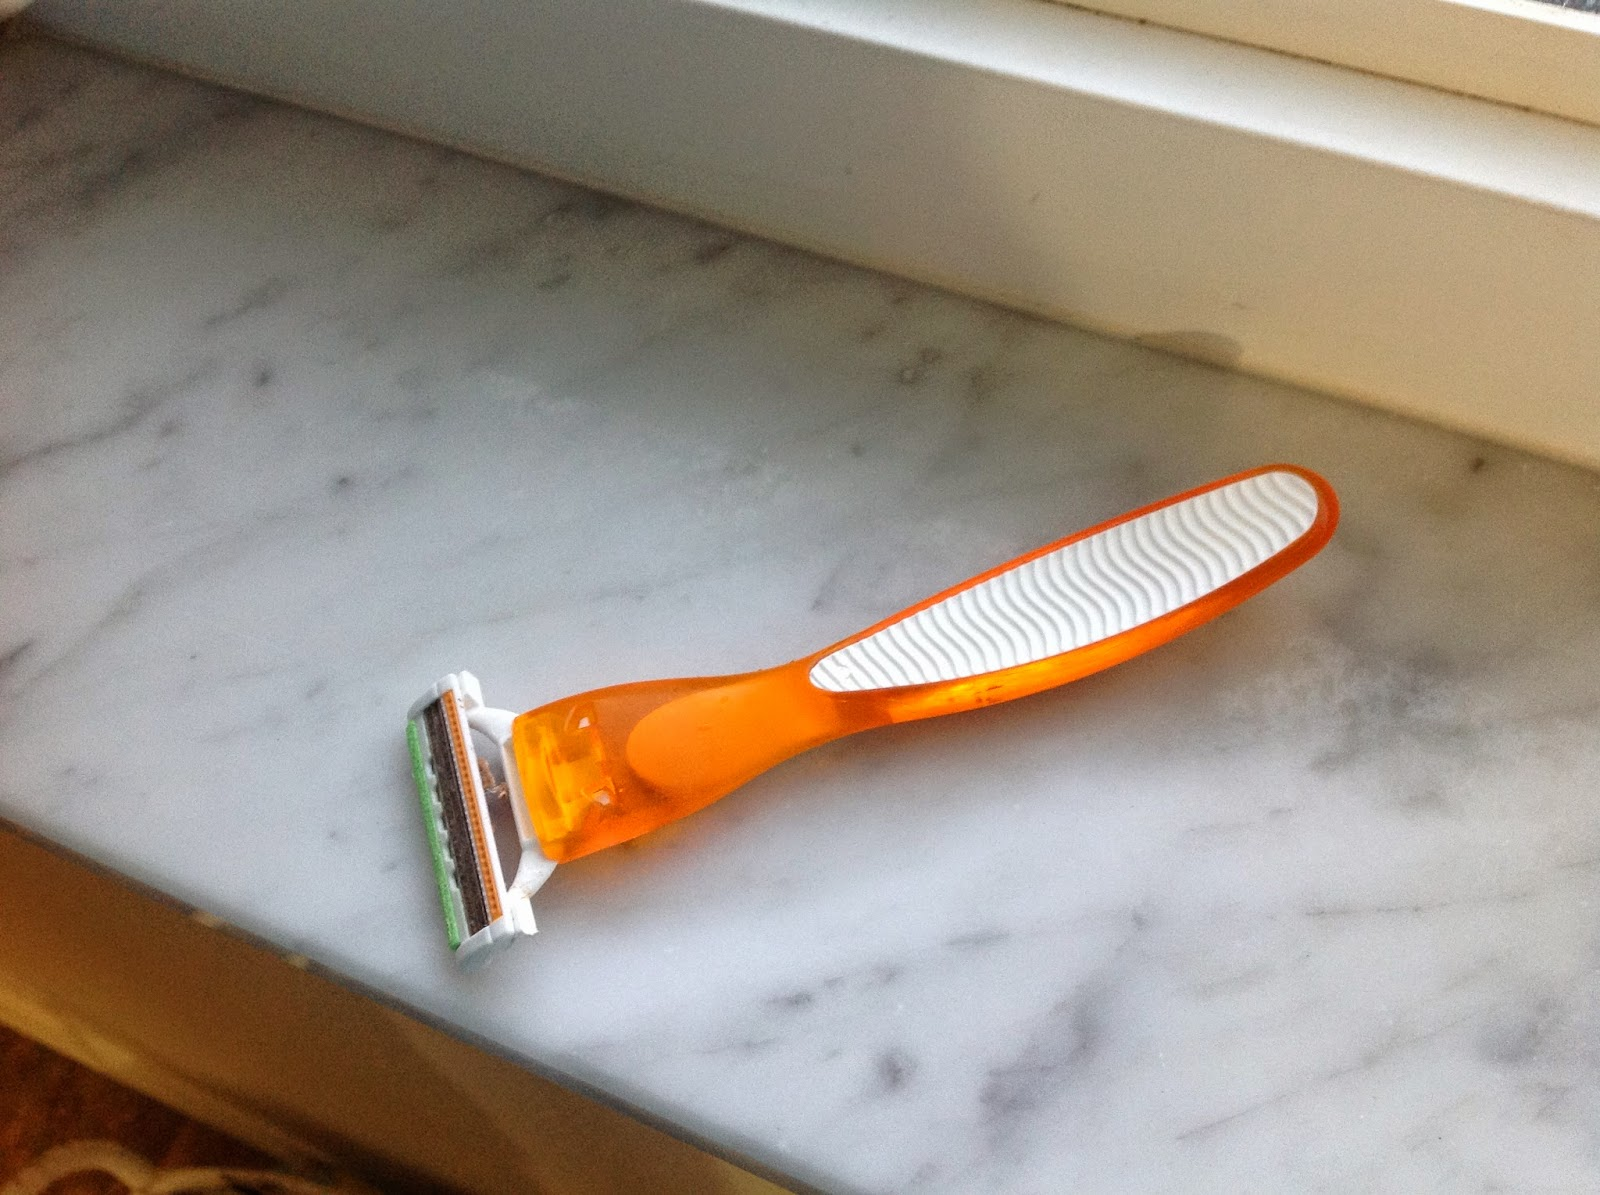 For Marfan Challenged a Clean Razor Can Save Your Life!